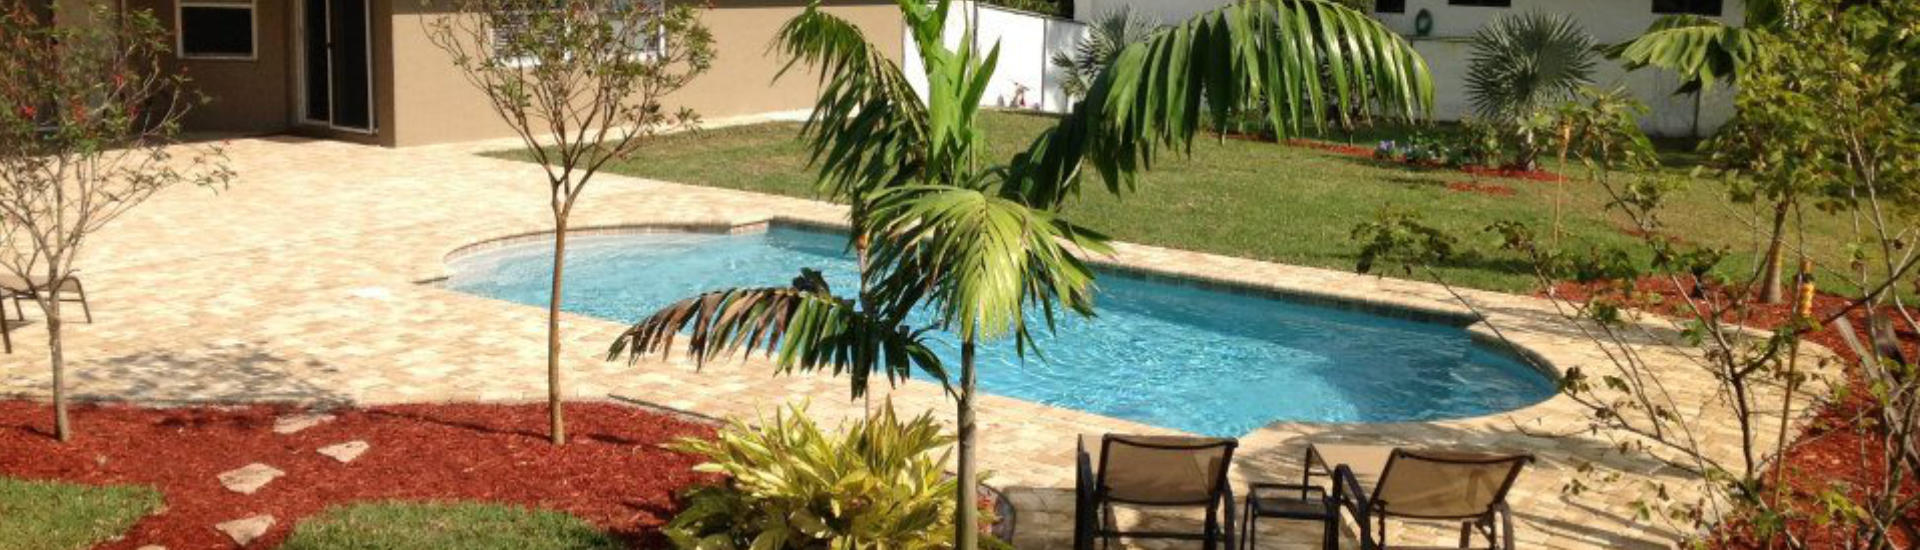 landscaped backyard with a swimming pool and a Travertine paver deck